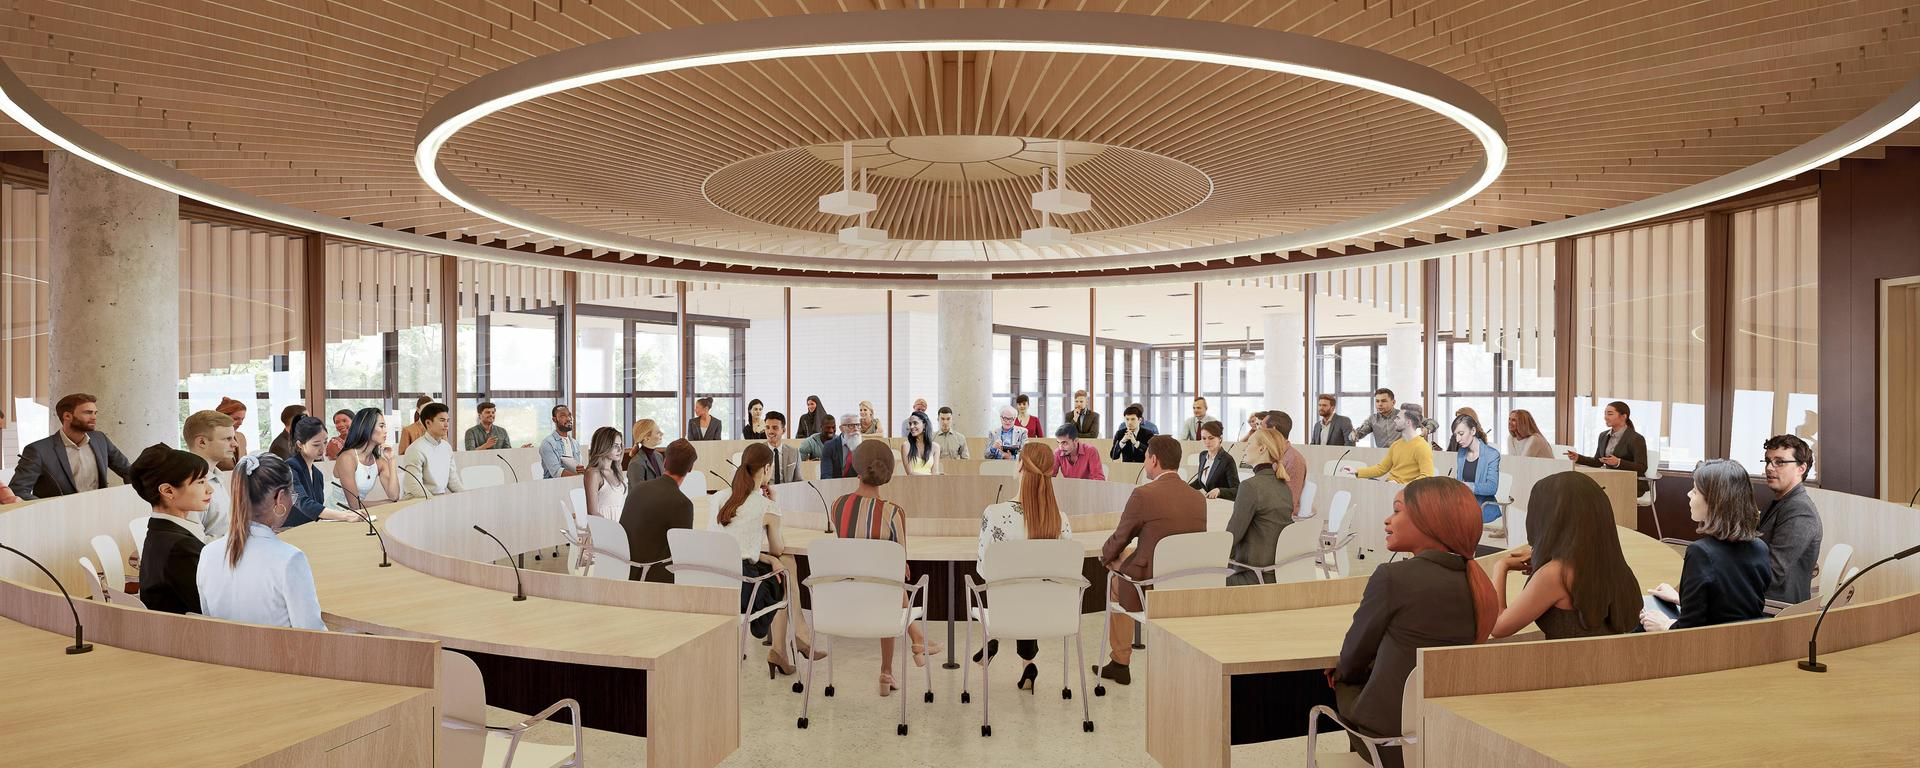 The Viewpoint Circle for Dialogue at the heart of the new Mathison Hall.